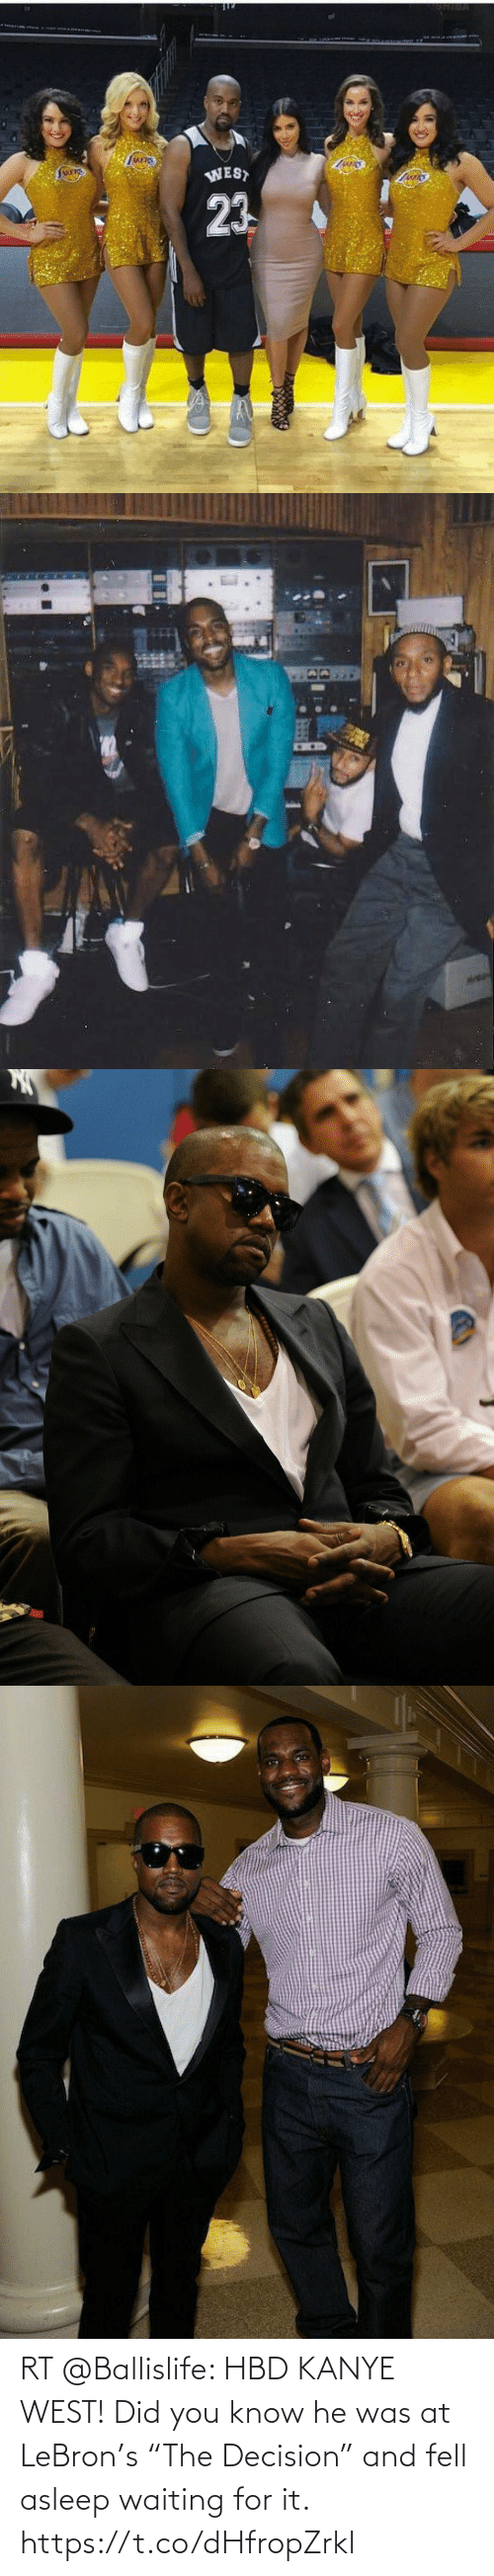 "He Was: RT @Ballislife: HBD KANYE WEST! Did you know he was at LeBron's ""The Decision"" and fell asleep waiting for it. https://t.co/dHfropZrkl"